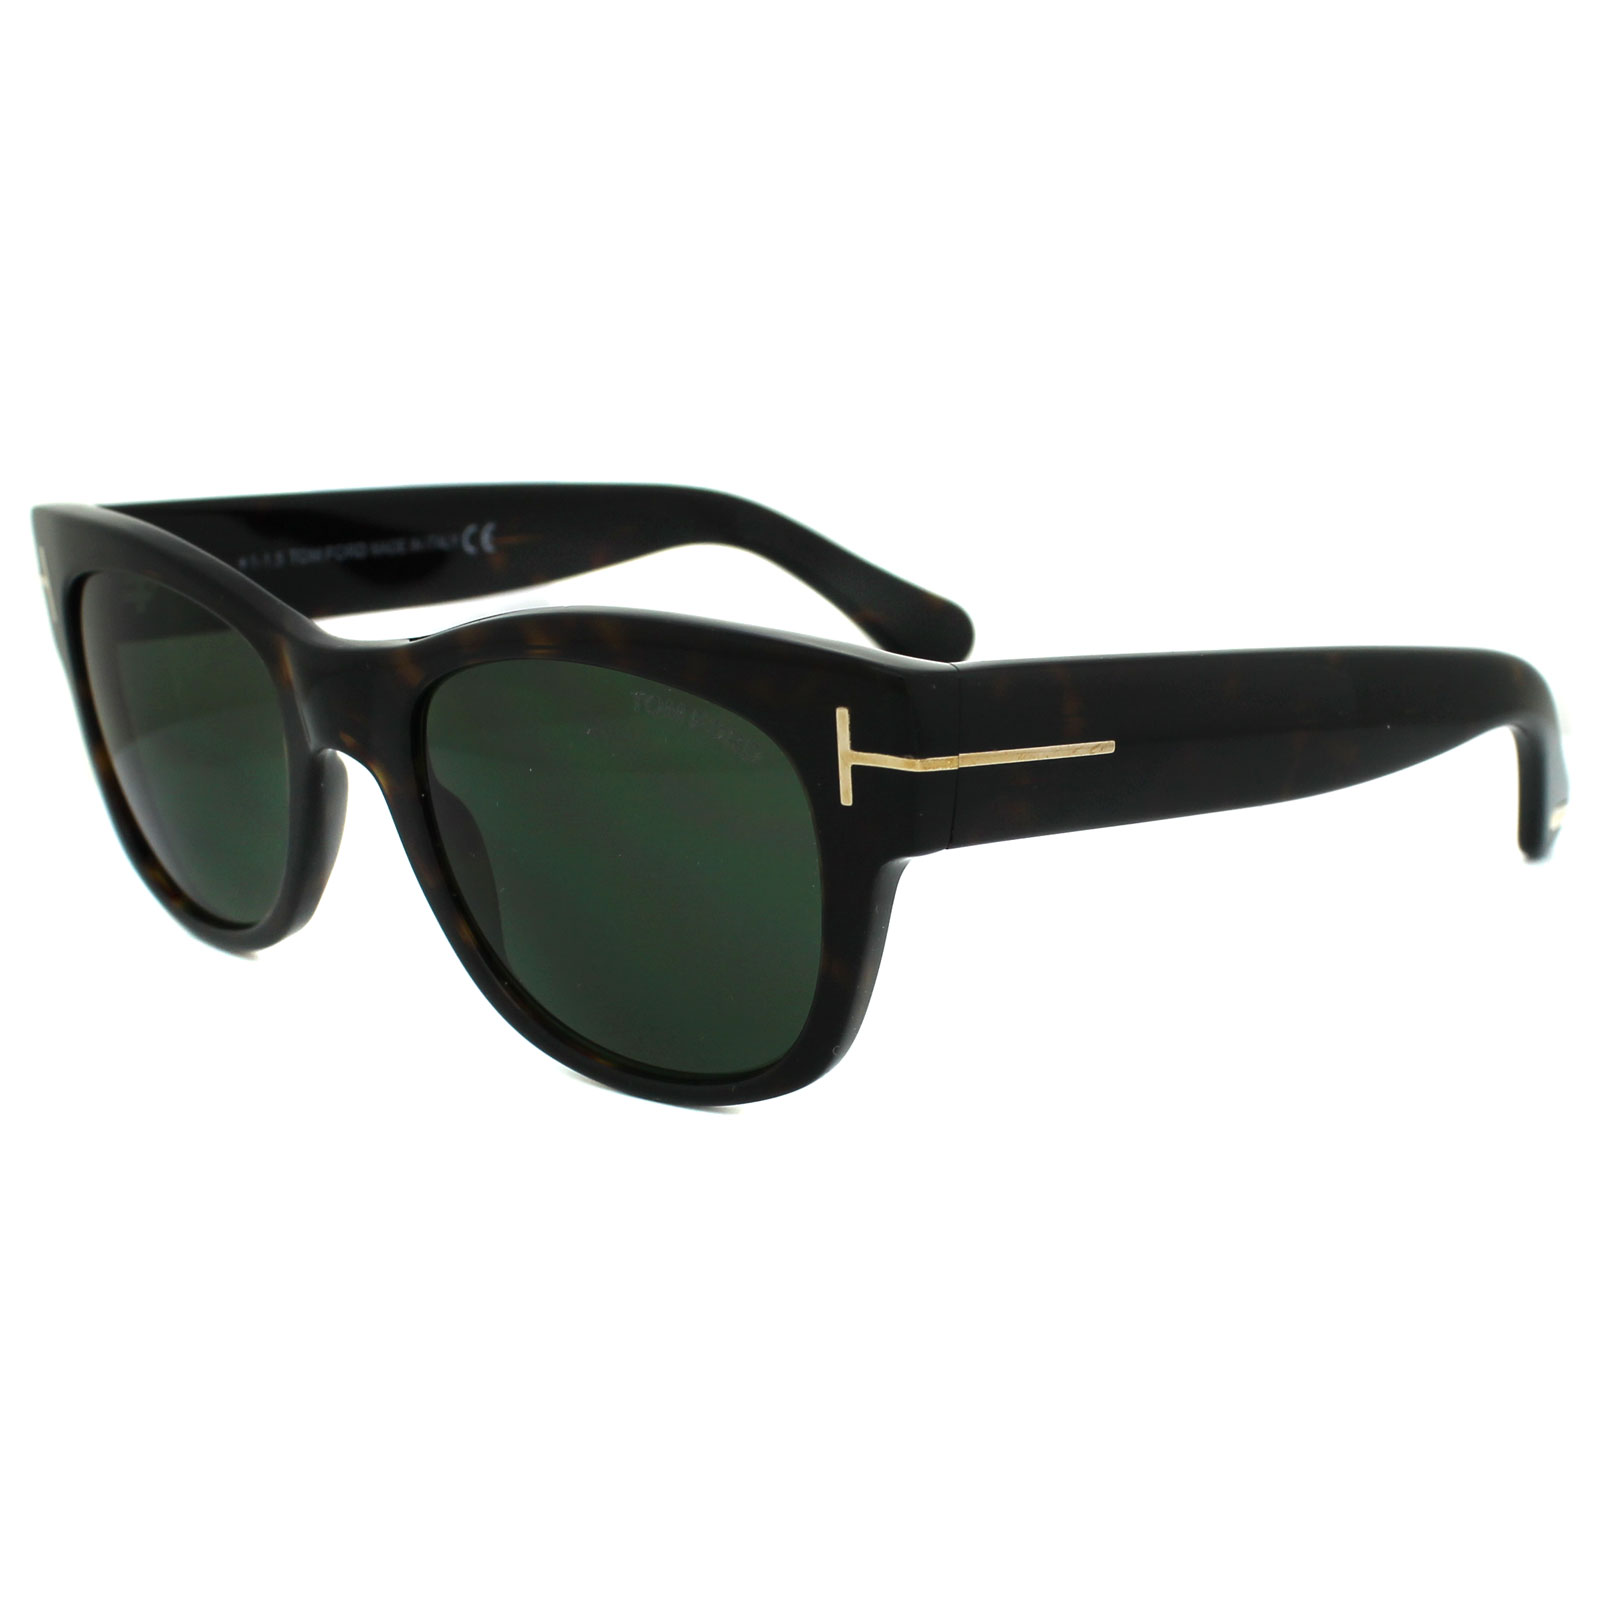 tom ford sonnenbrille 0058 cary 52n dark havana green ebay. Black Bedroom Furniture Sets. Home Design Ideas